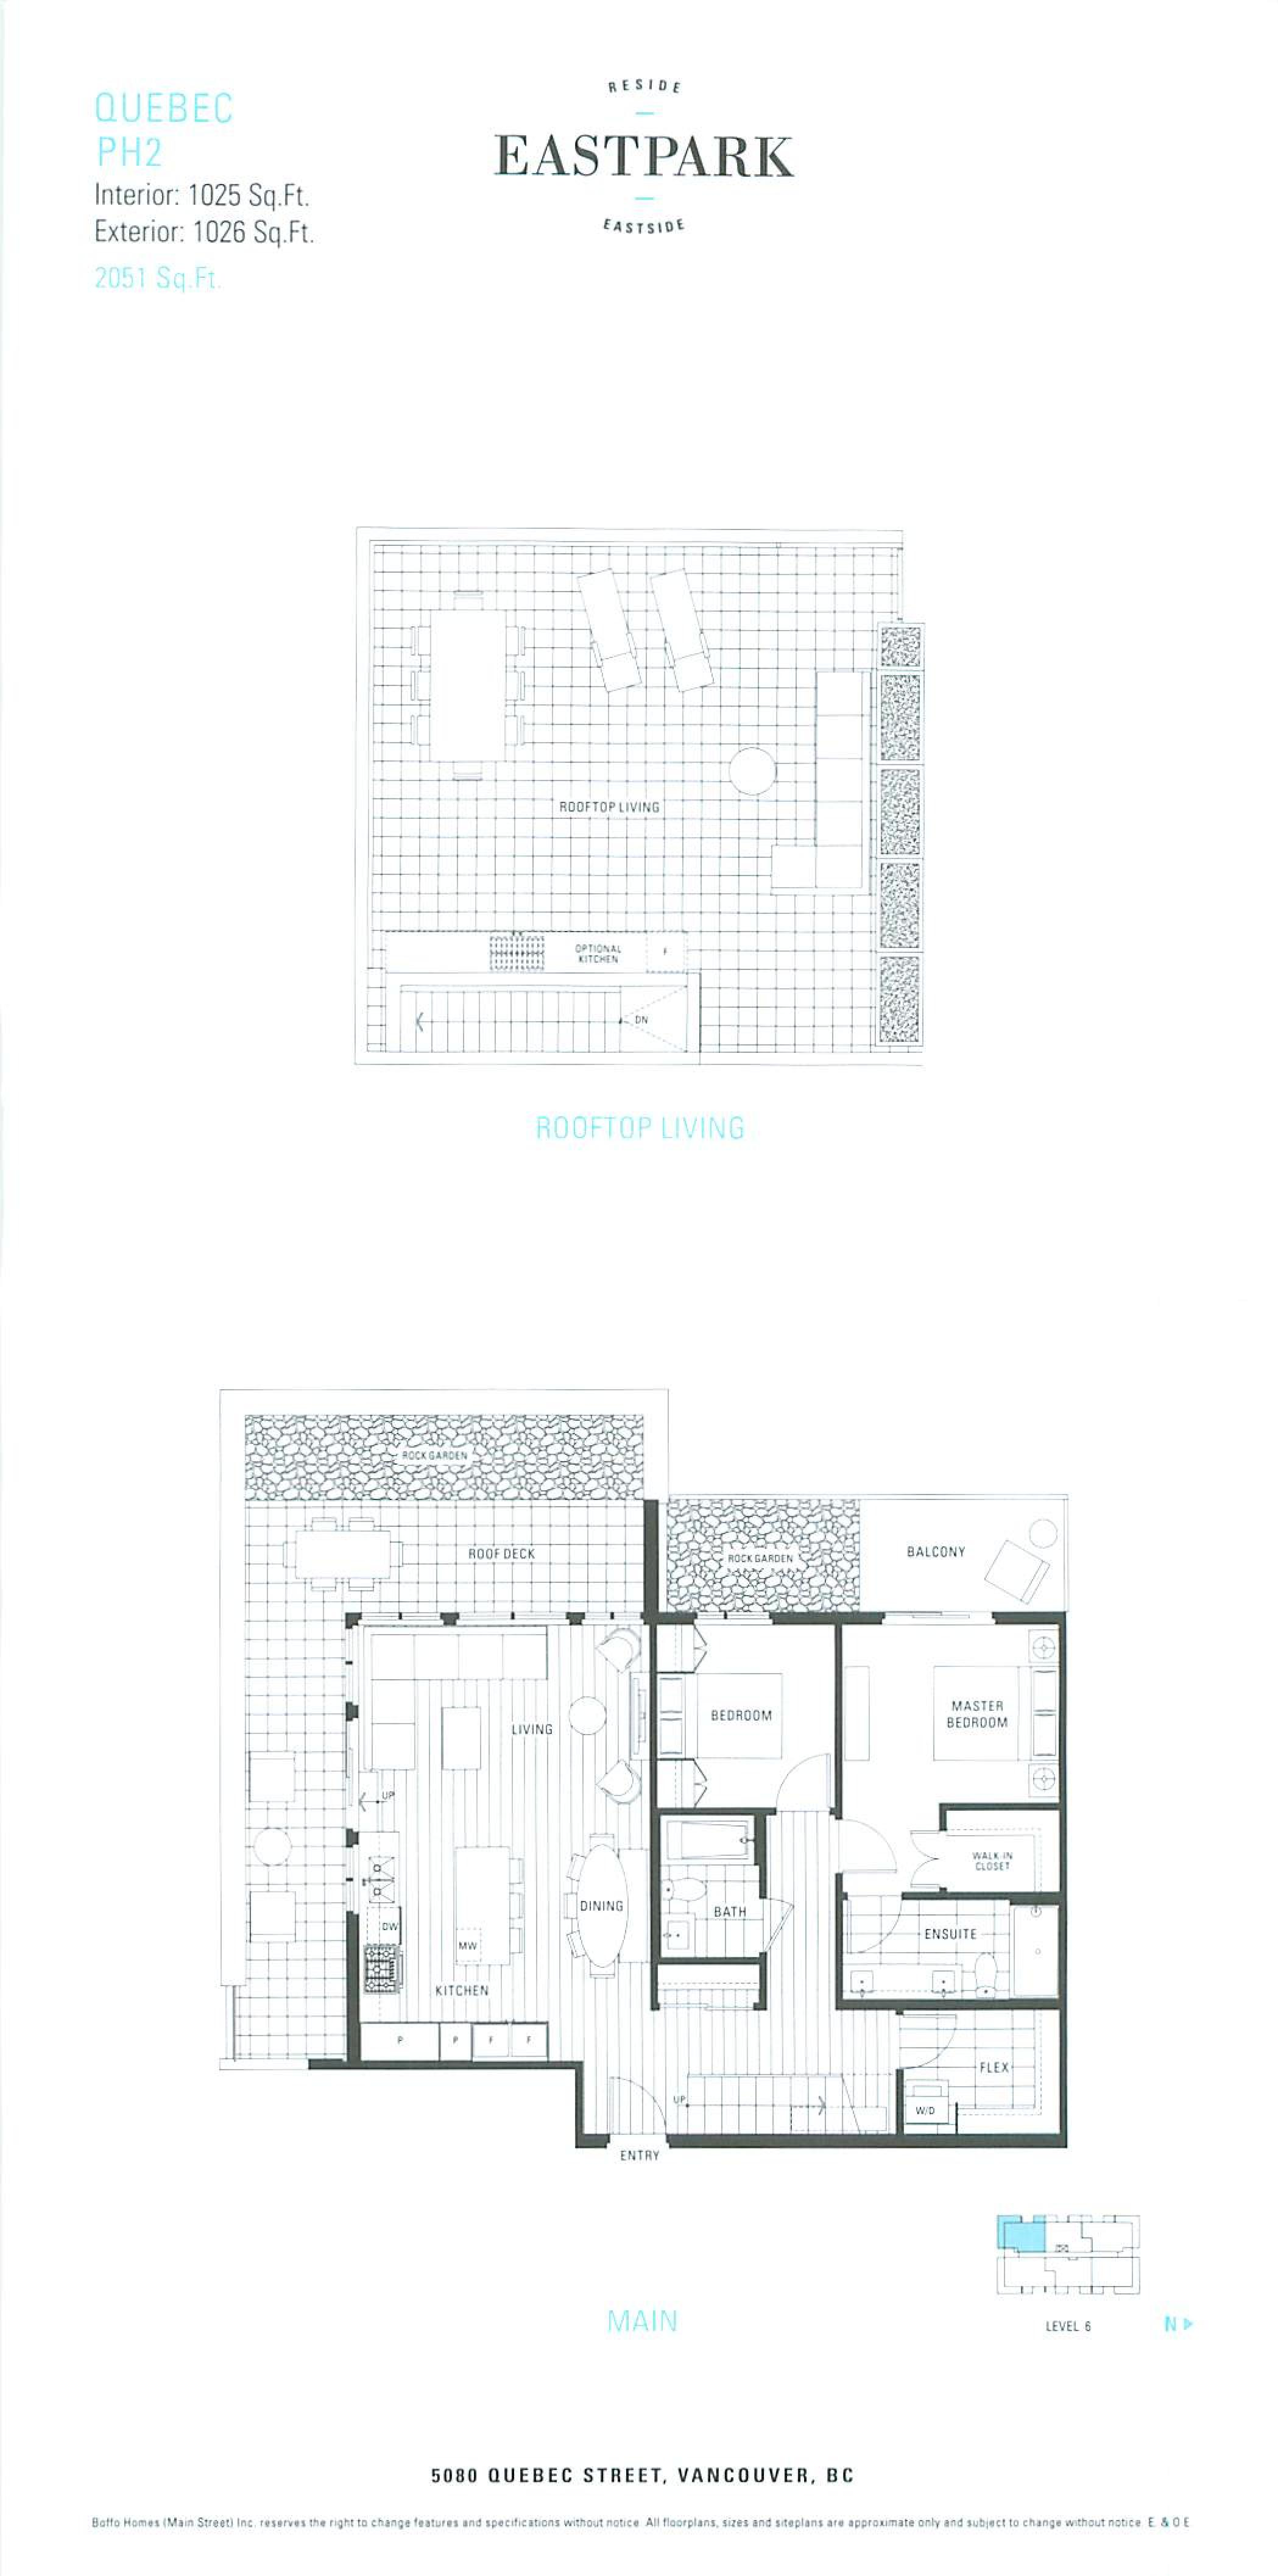 EastPark Quebec Larger Floor Plans Mike Stewart-page-002